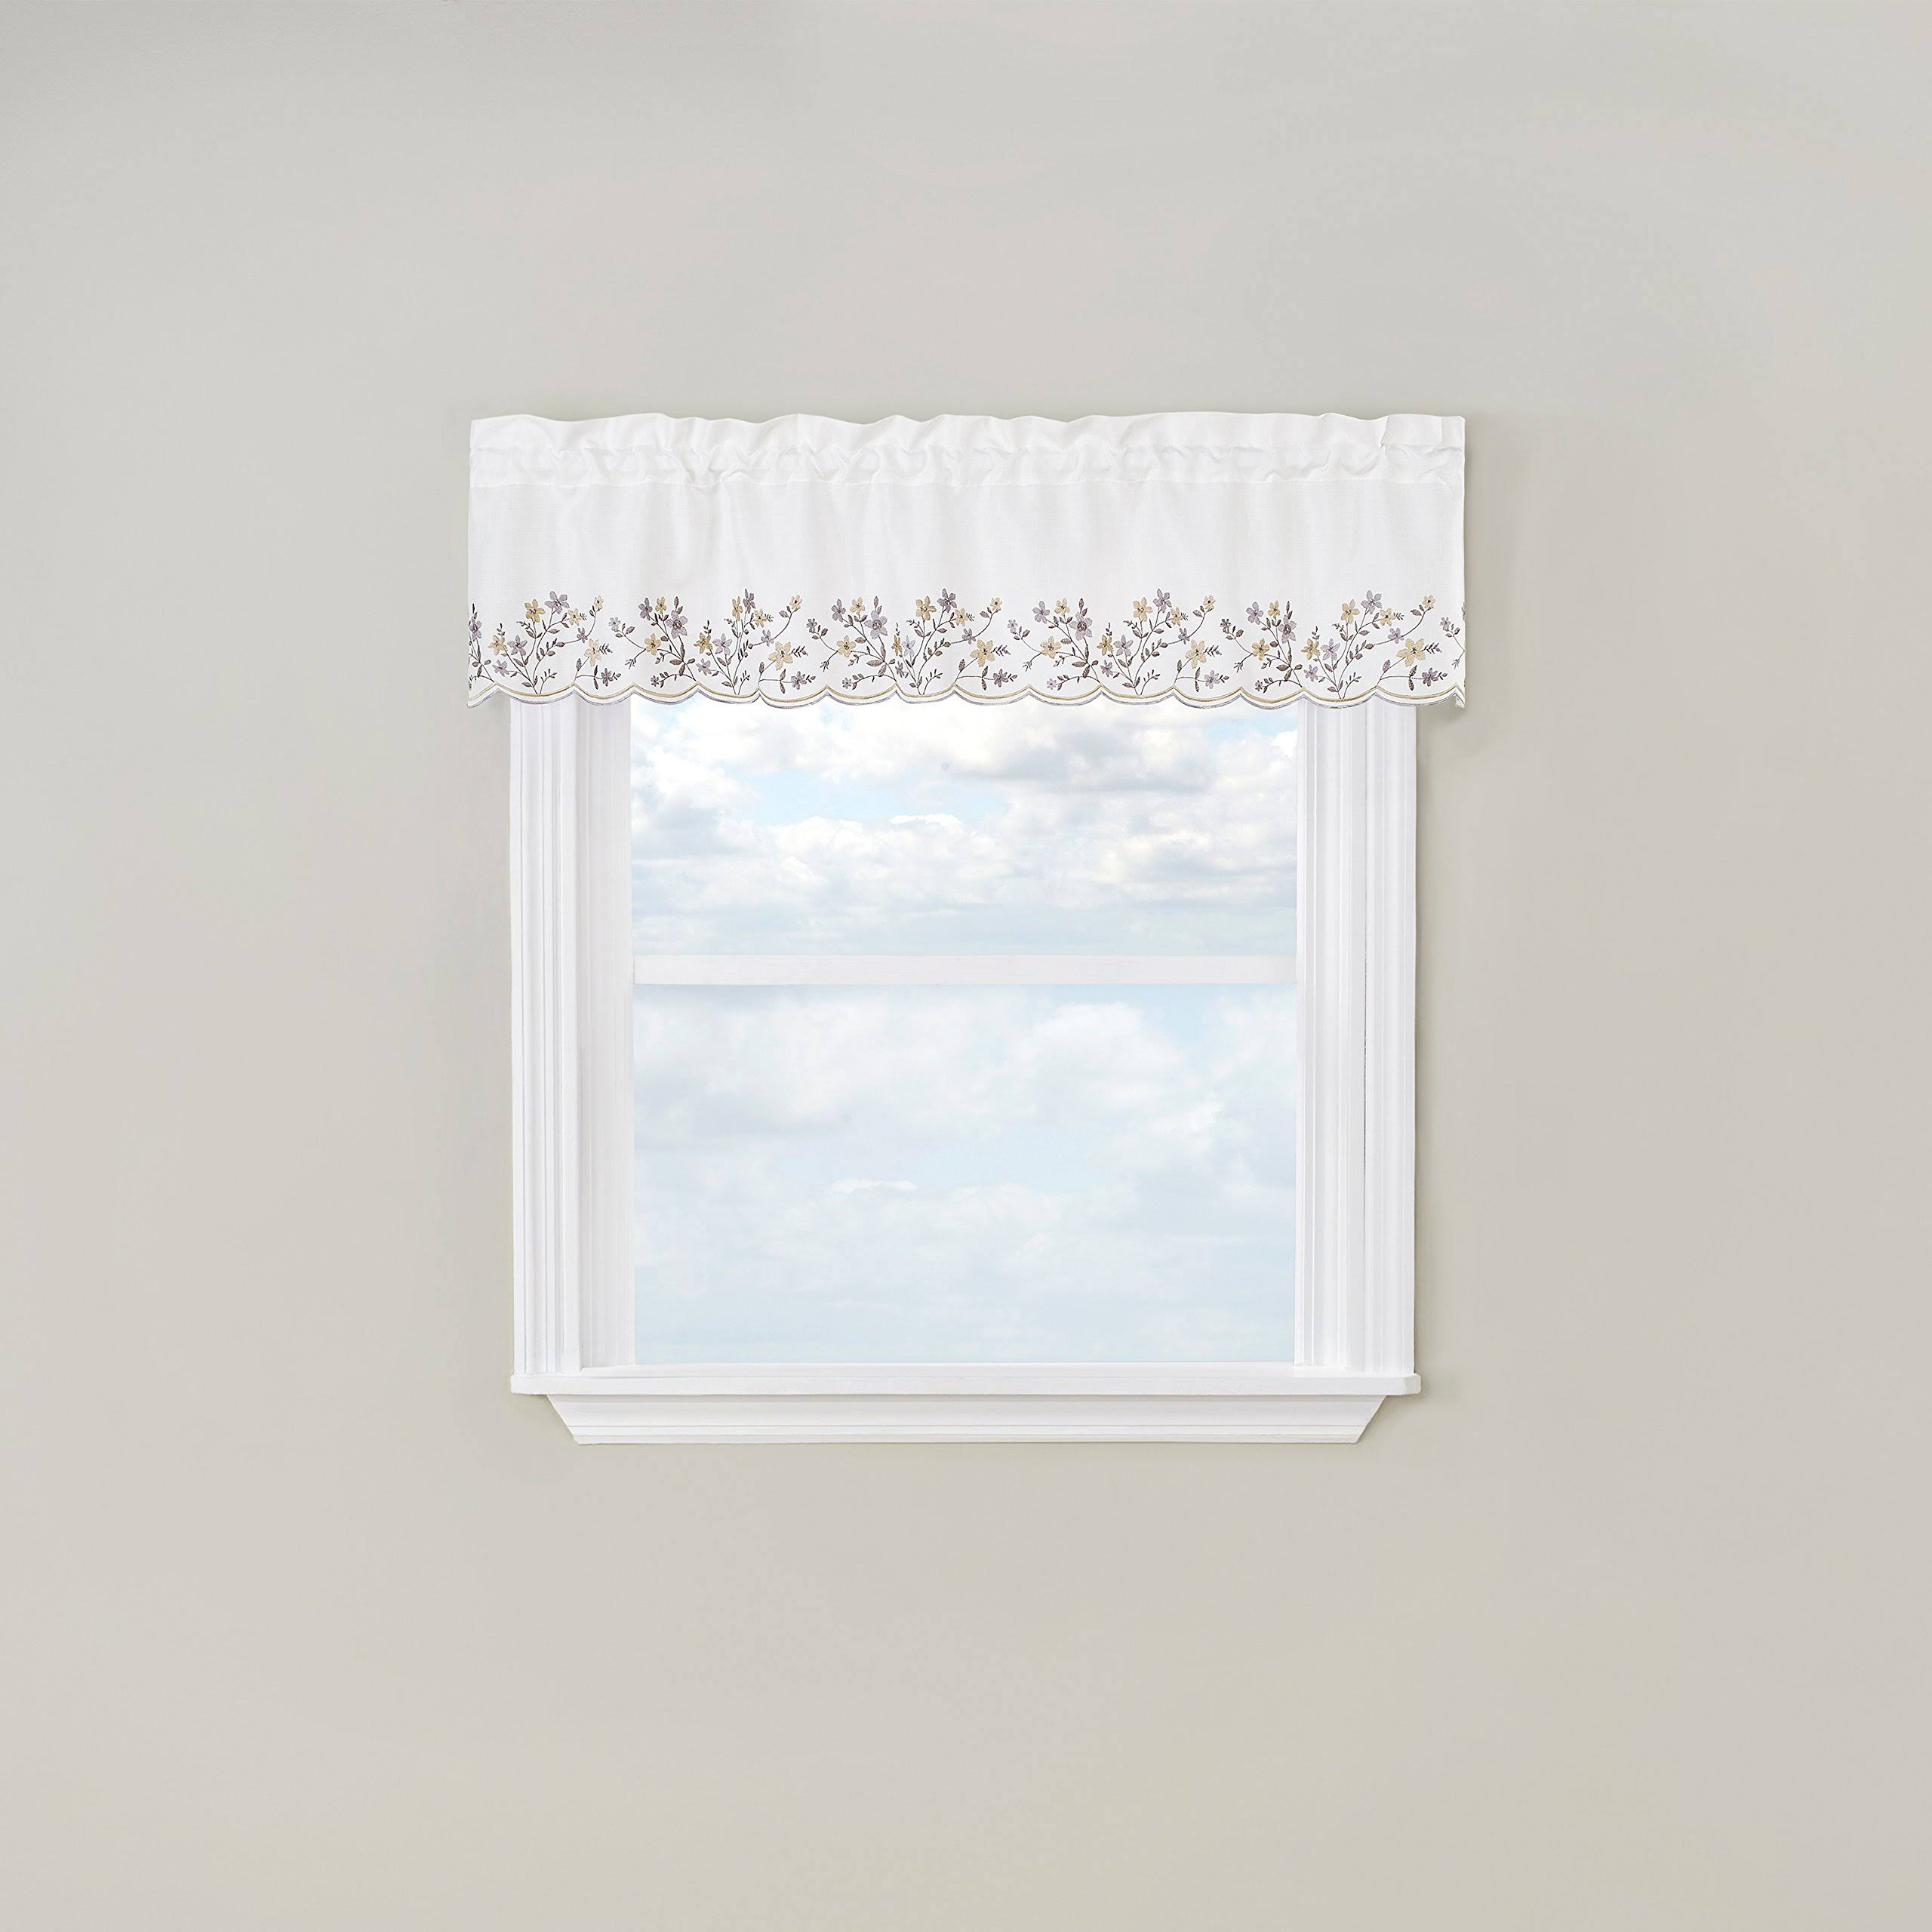 Bloom Embroidered Valance Curtain